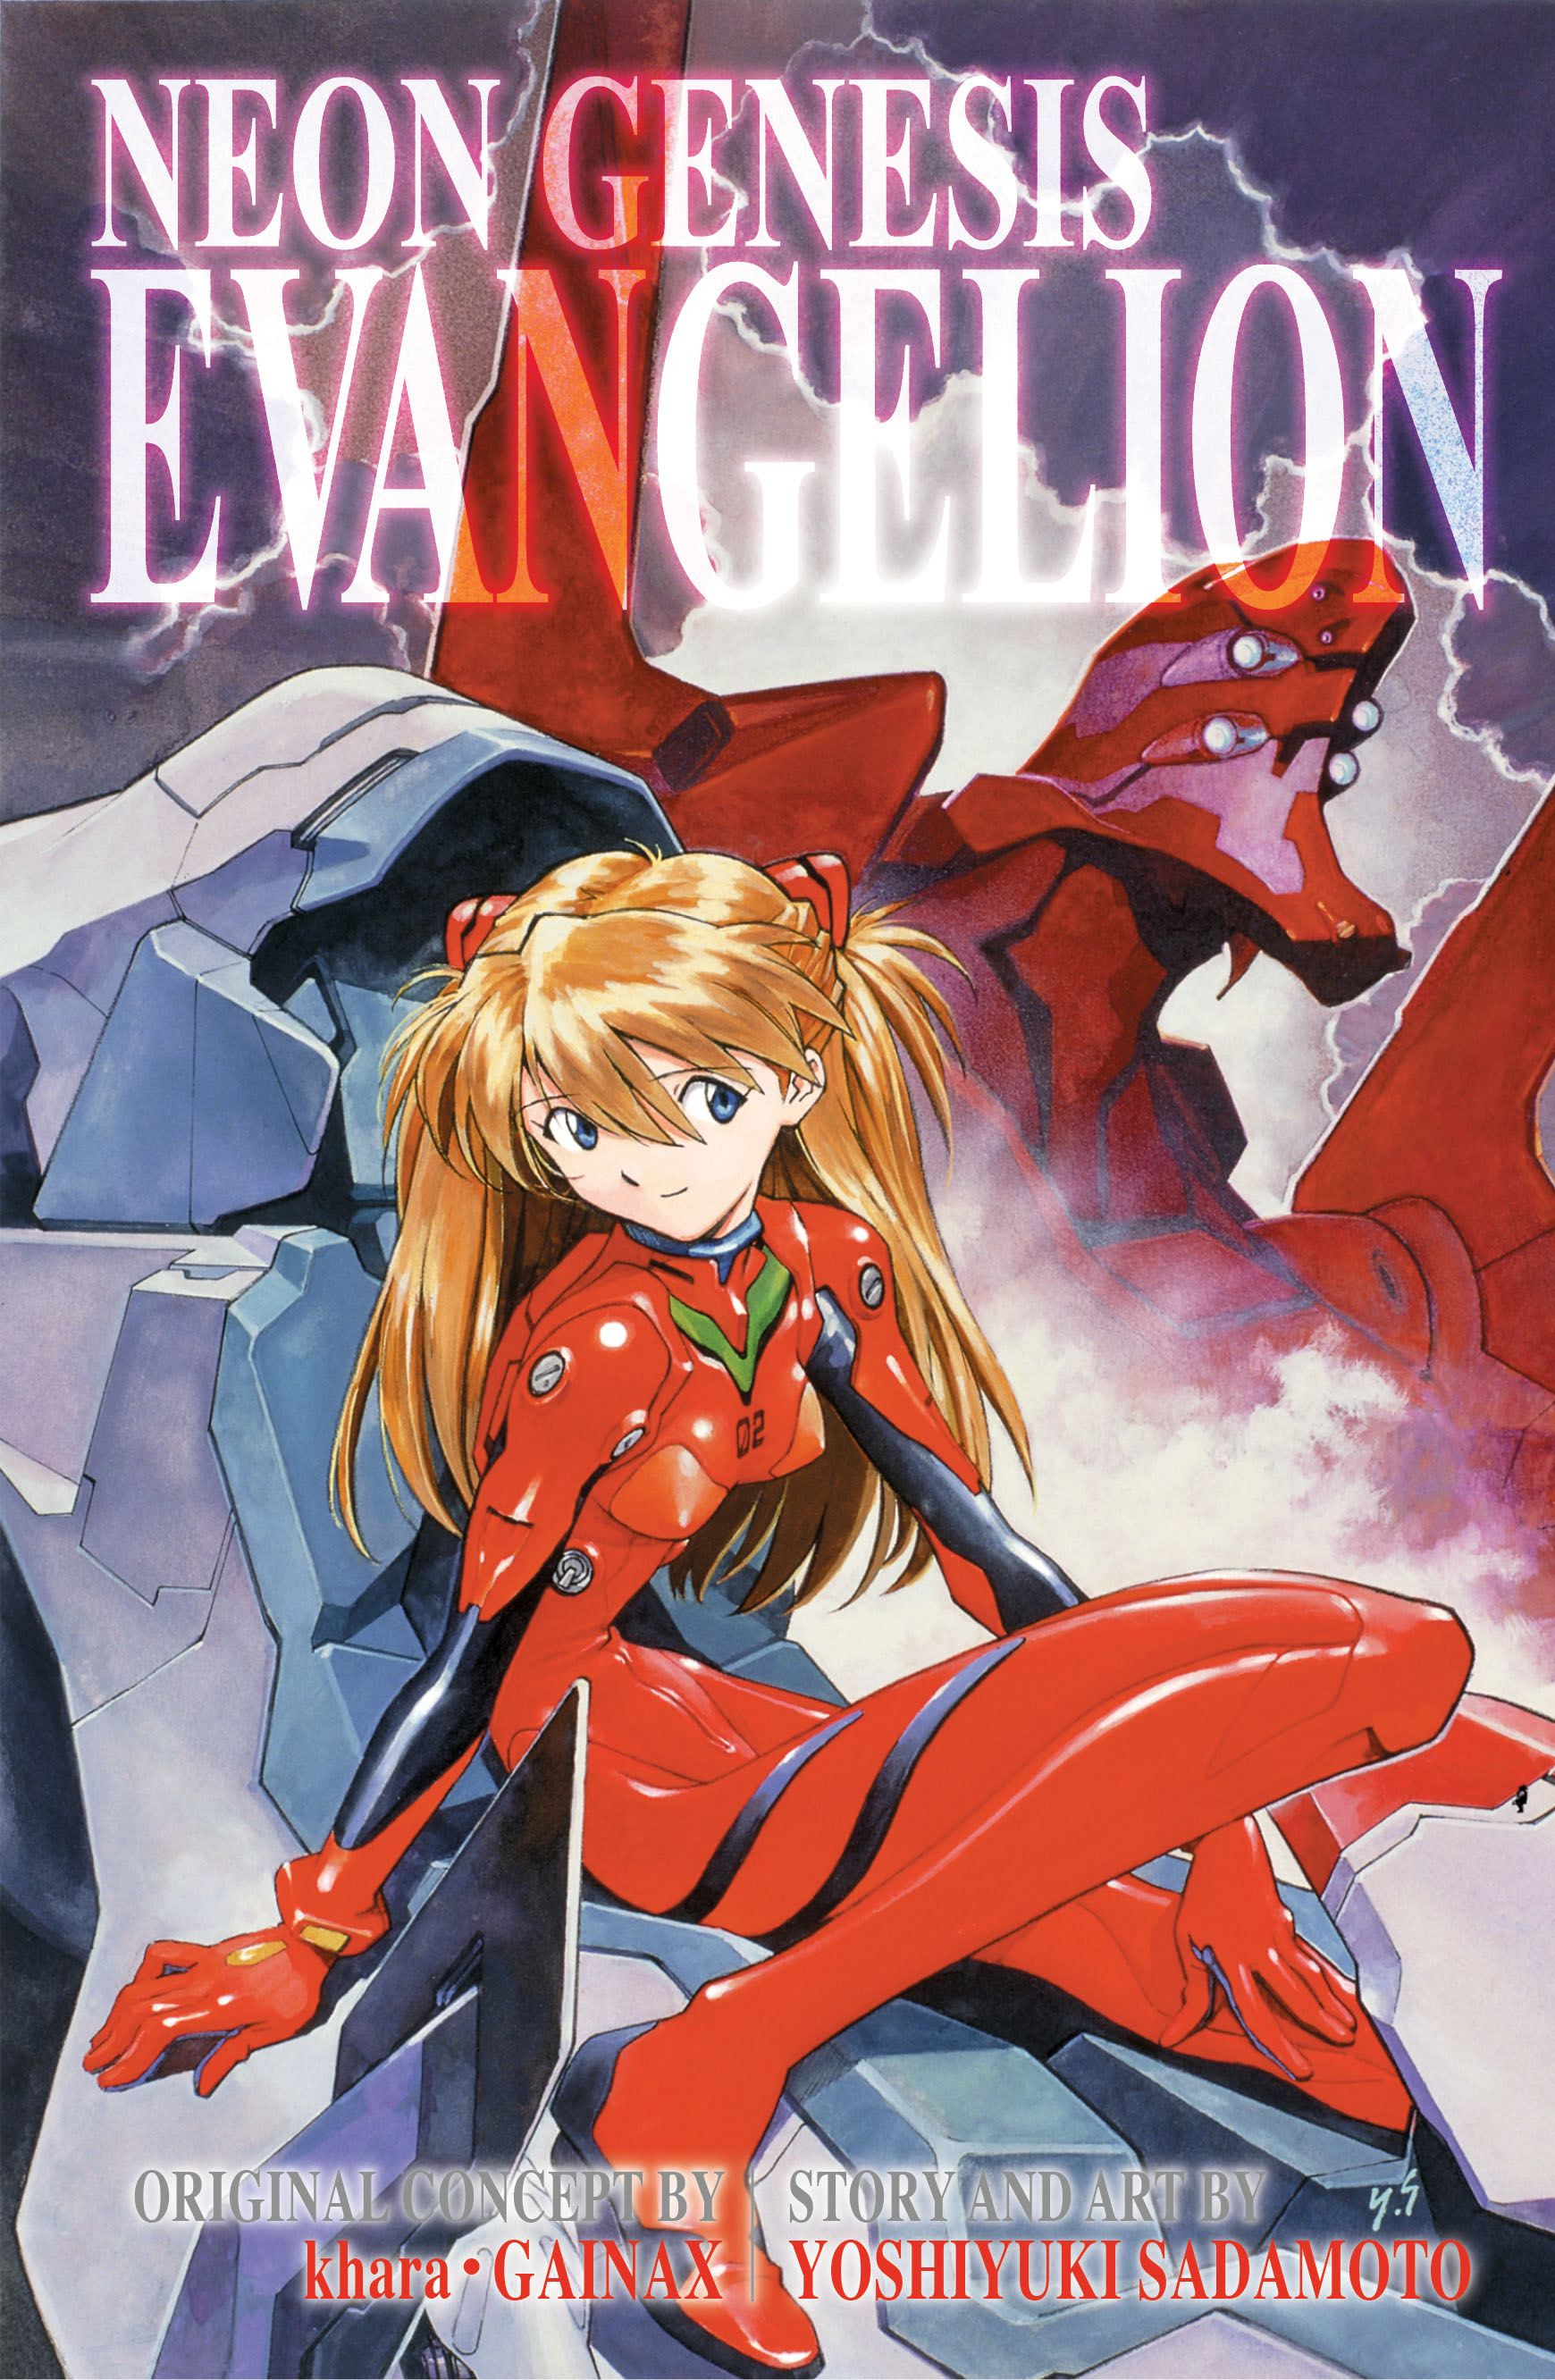 Neon genesis evangelion 3 in 1 edition vol 3 9781421553627 hr